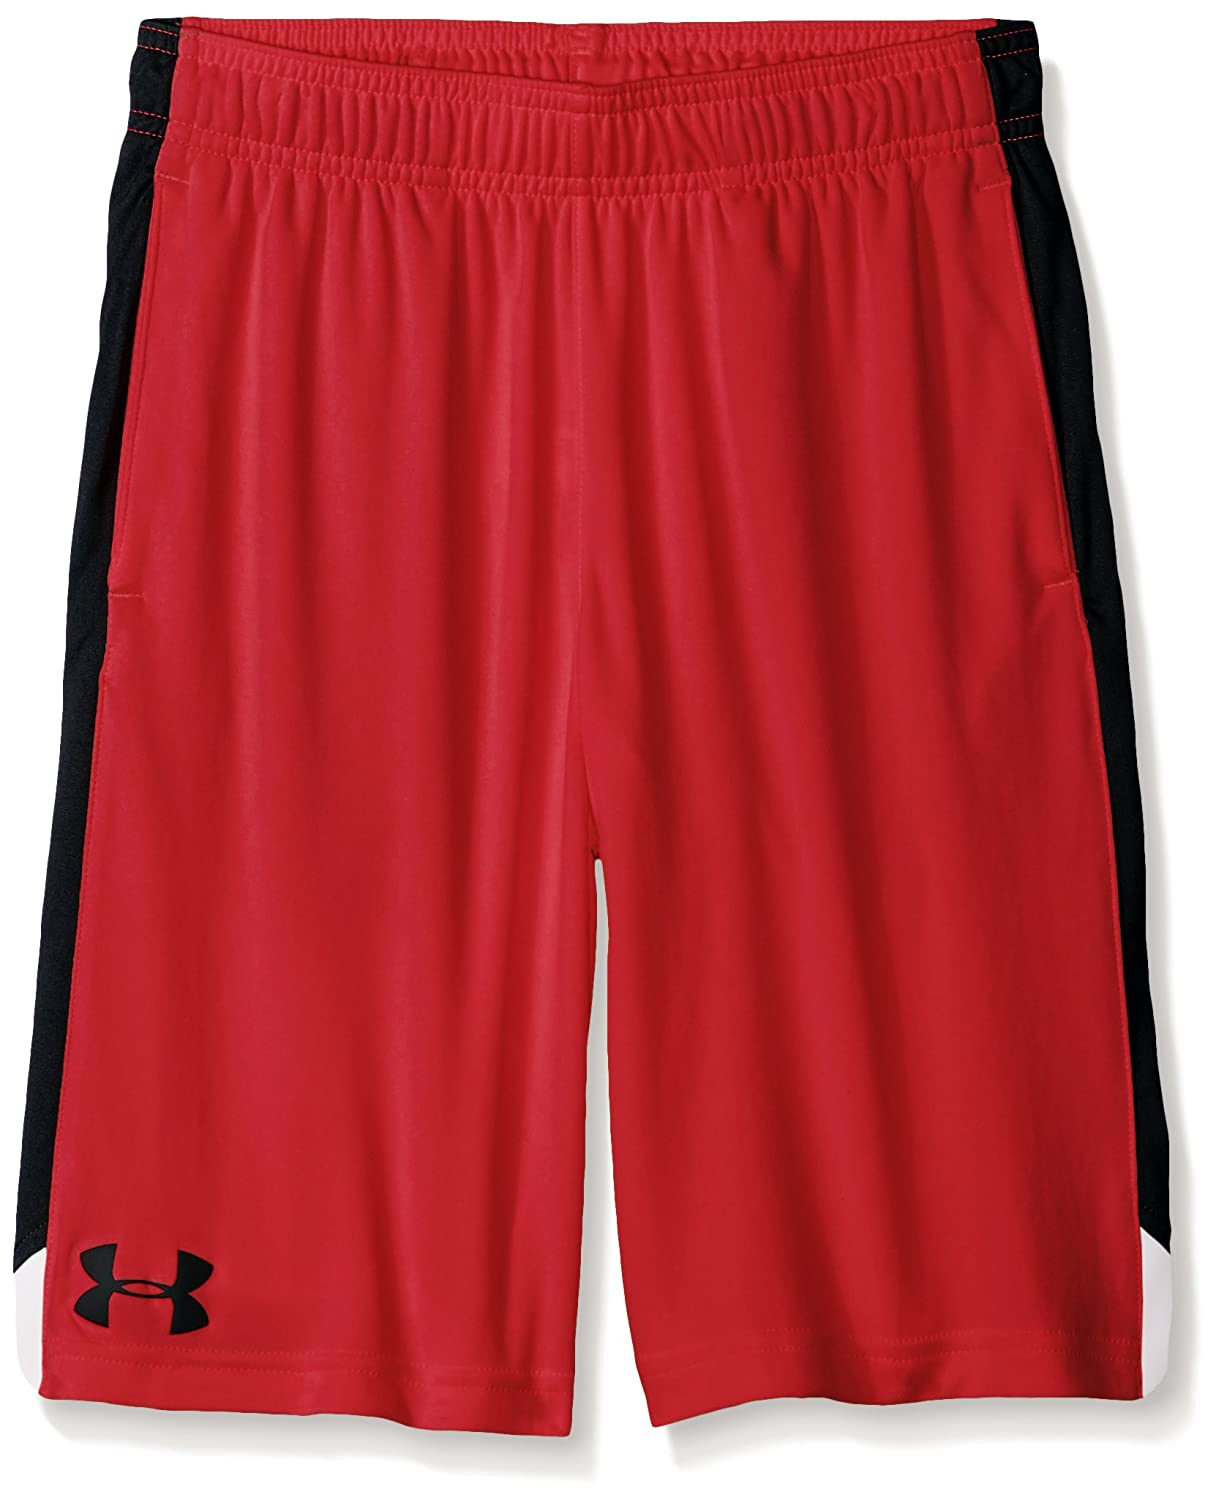 Under Armour Boys Eliminator short Under Armour Apparel